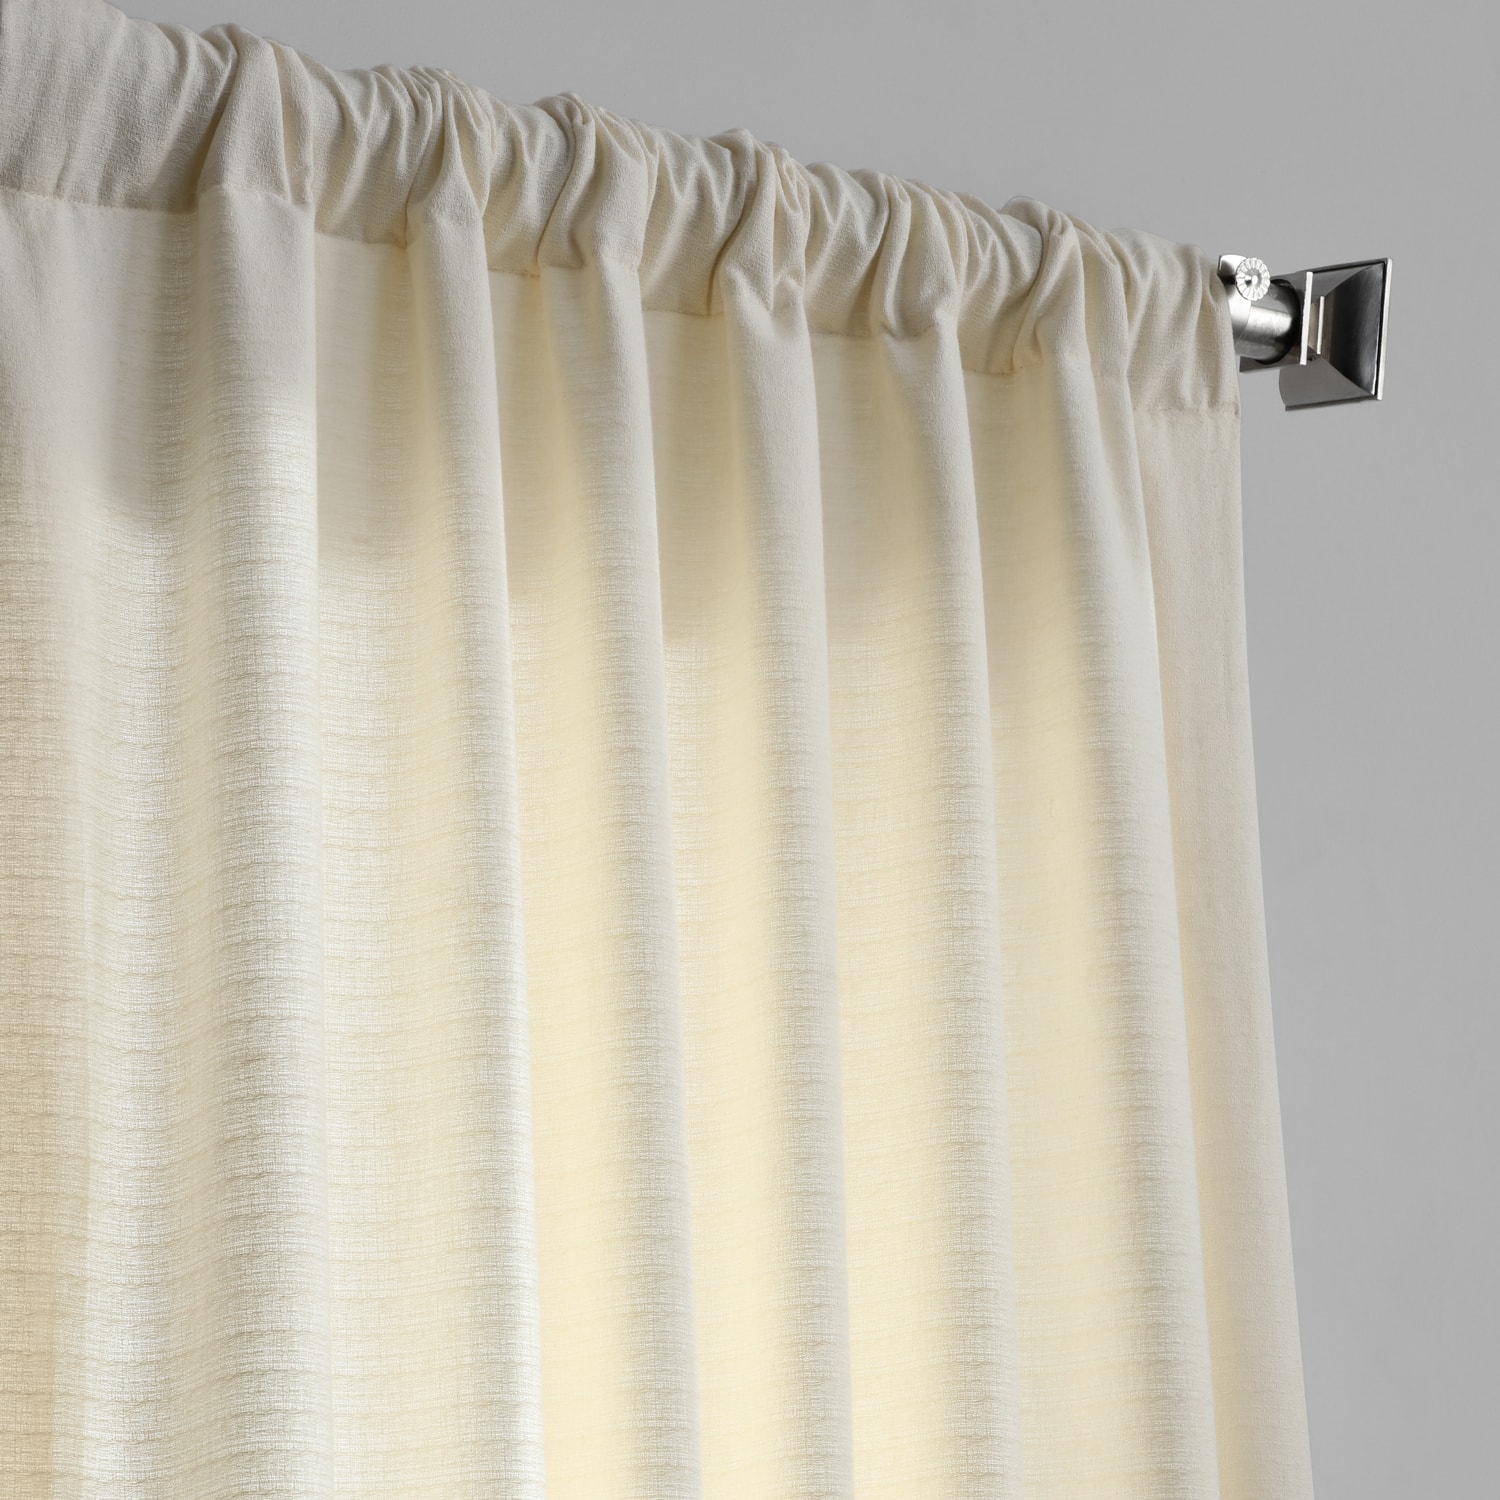 Pale Ivory Cotton Textured BarkWeave Curtain